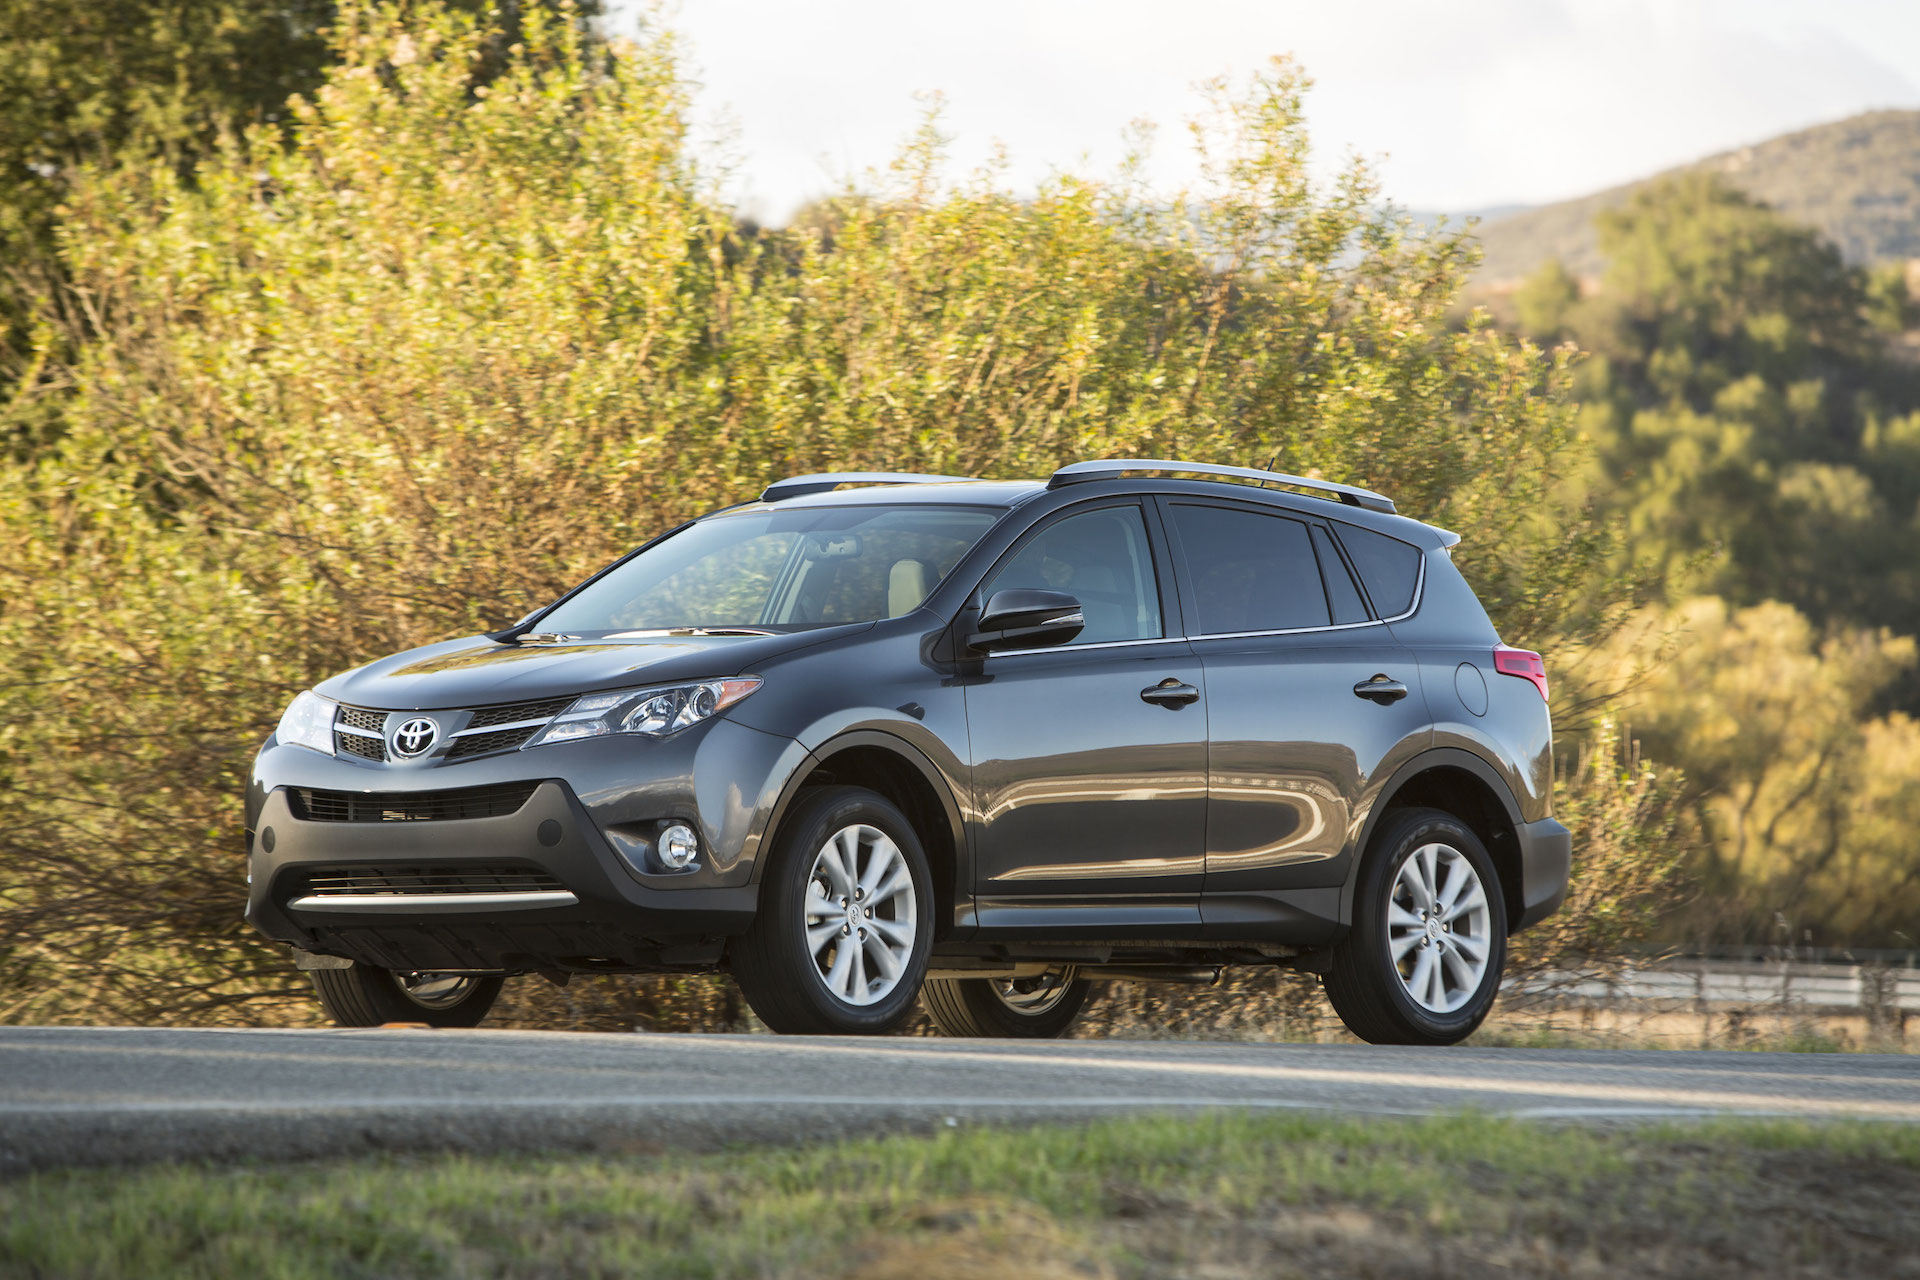 2015 Toyota RAV4 Review, Ratings, Specs, Prices, and Photos